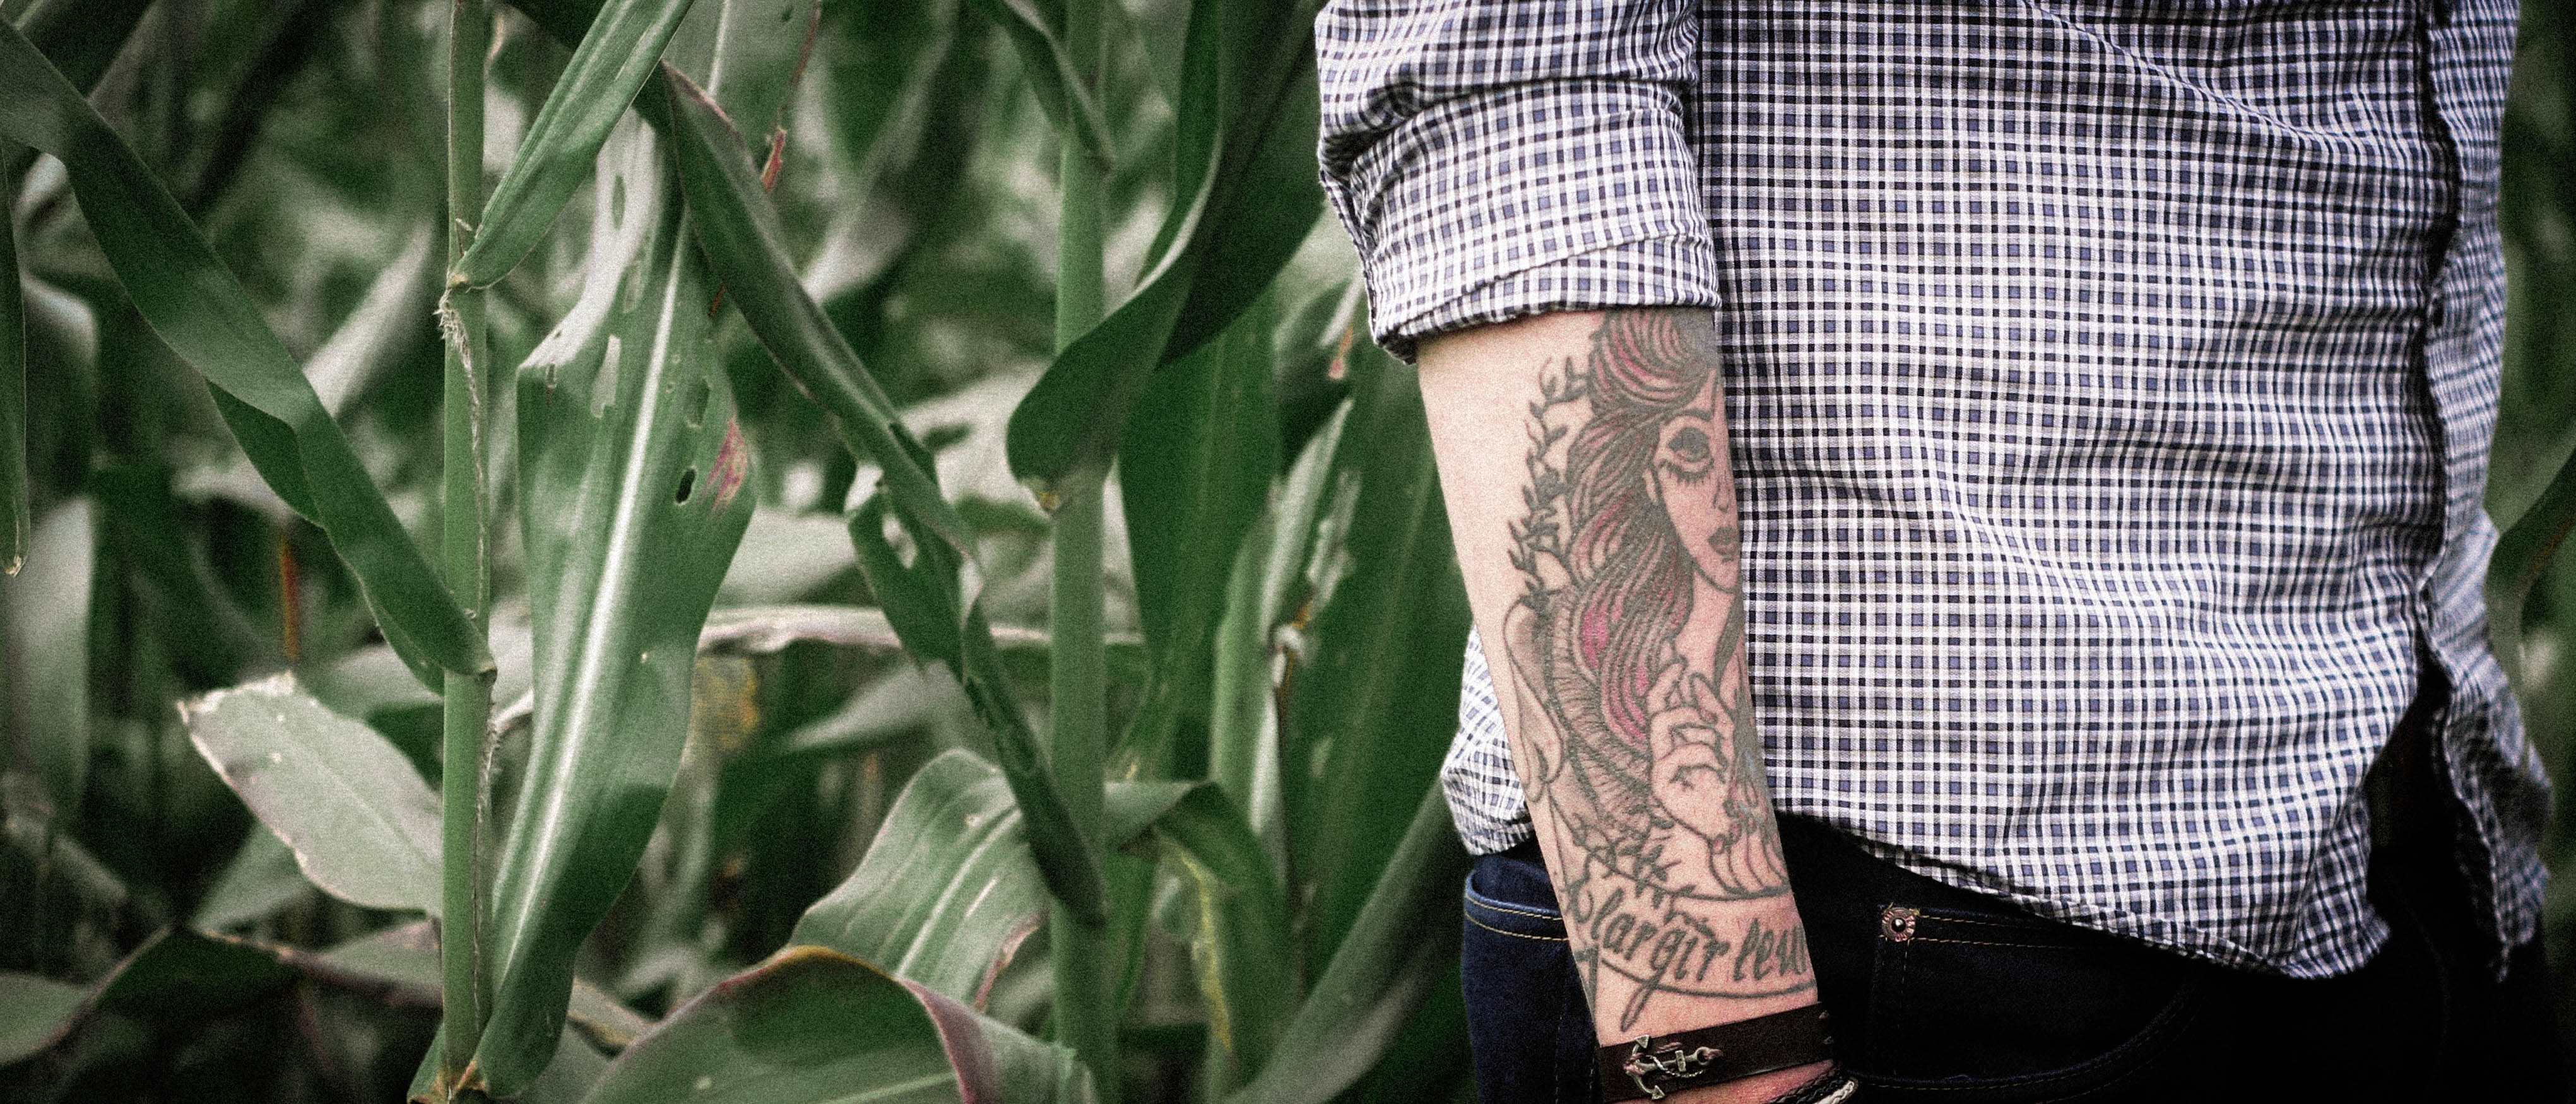 Forearm tattoo on a person with a cuffed shirt